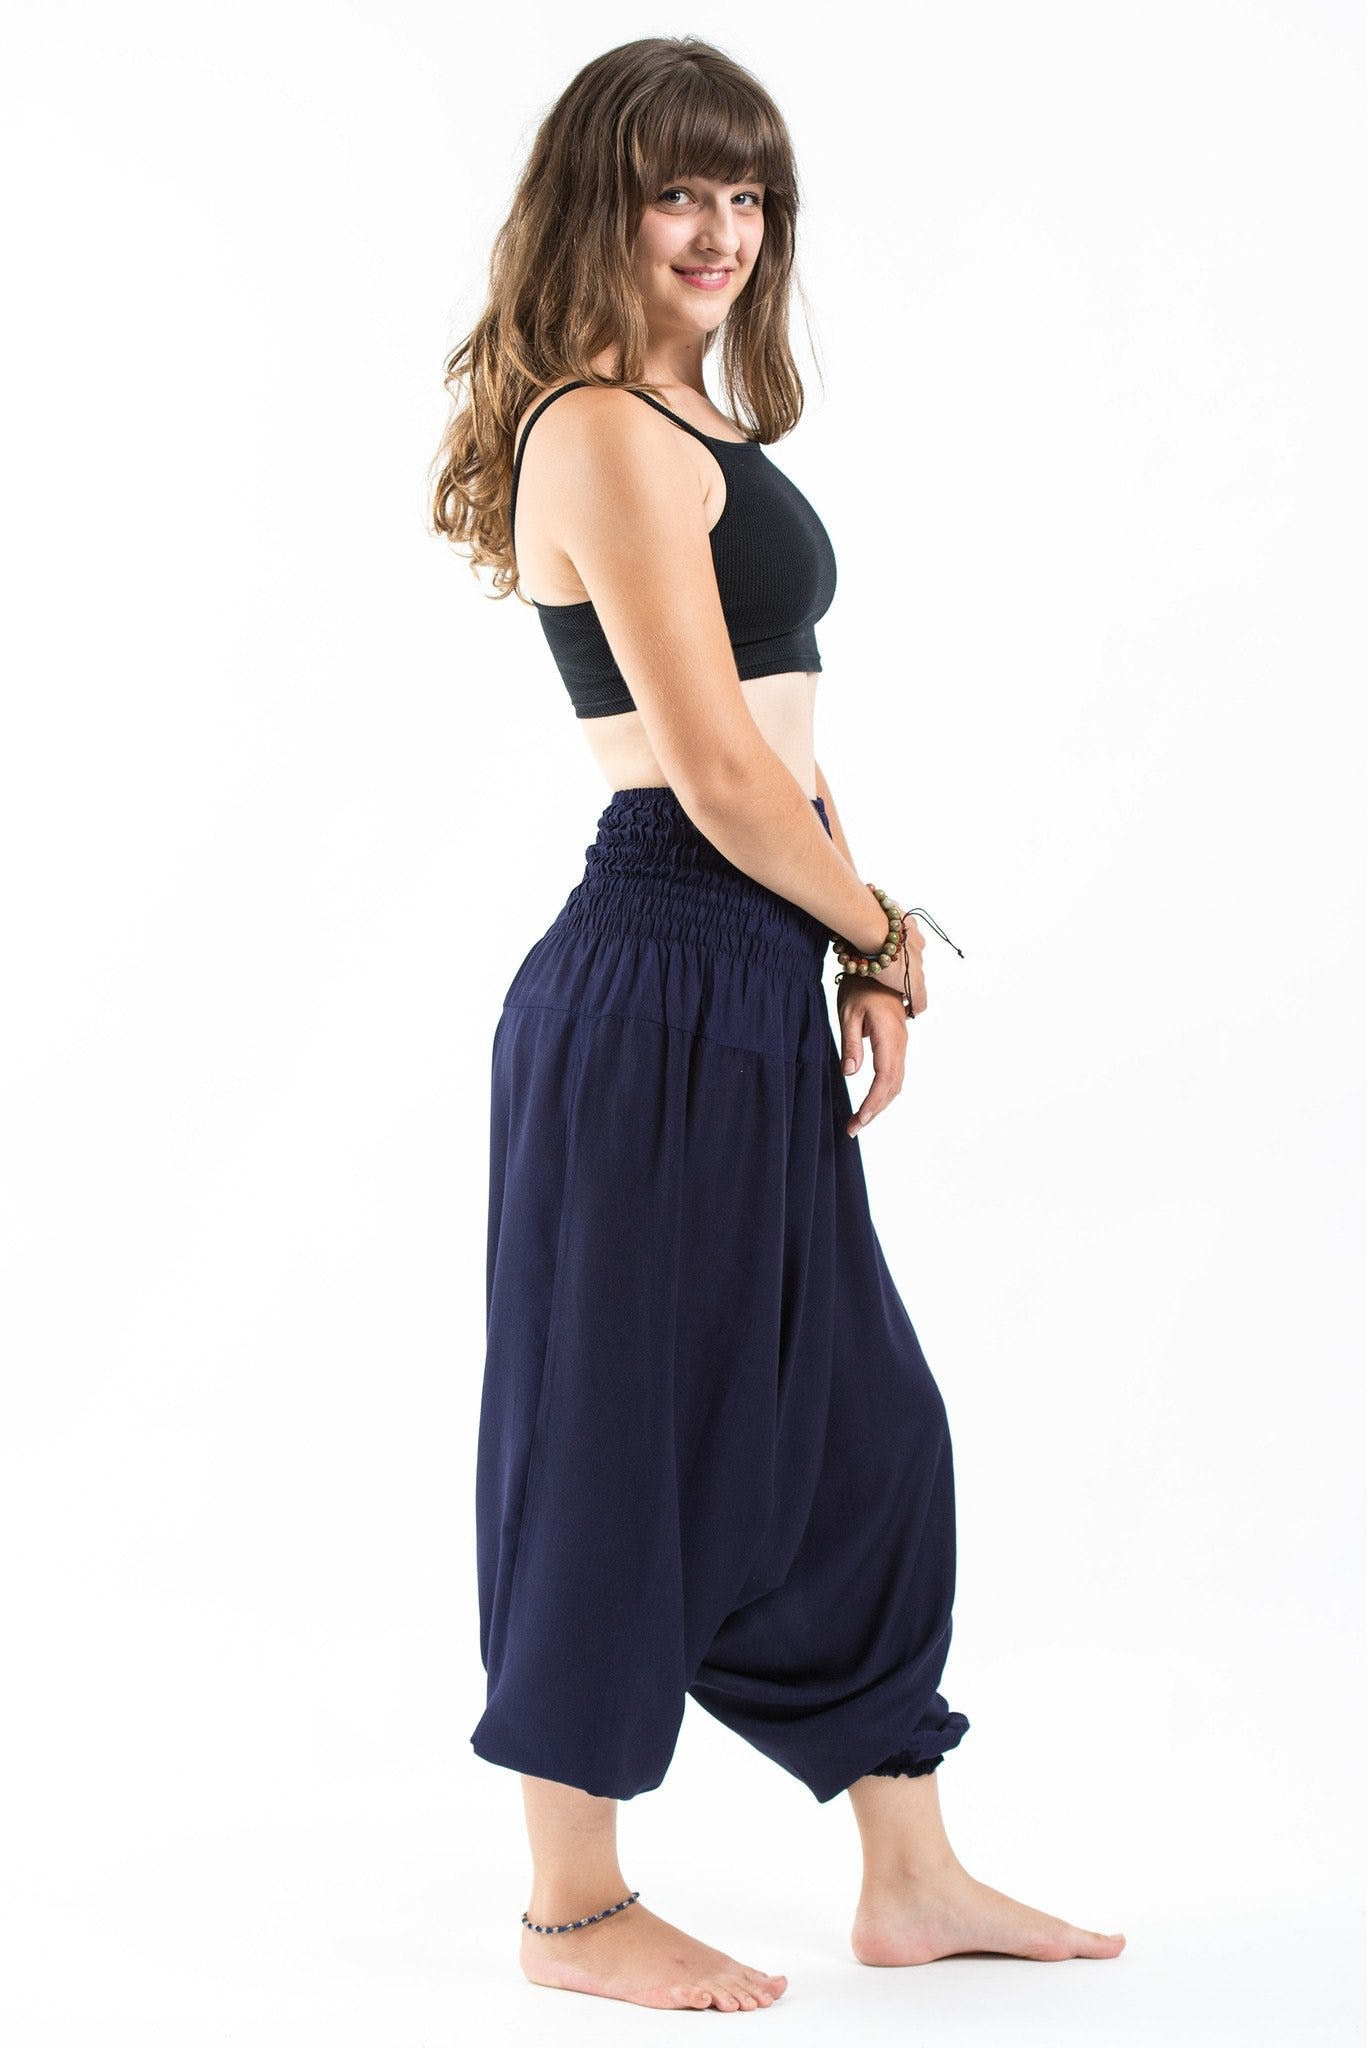 Thai Low Crotch Harem Pant / Jumpsuit / Jumper- Solid Navy Blue